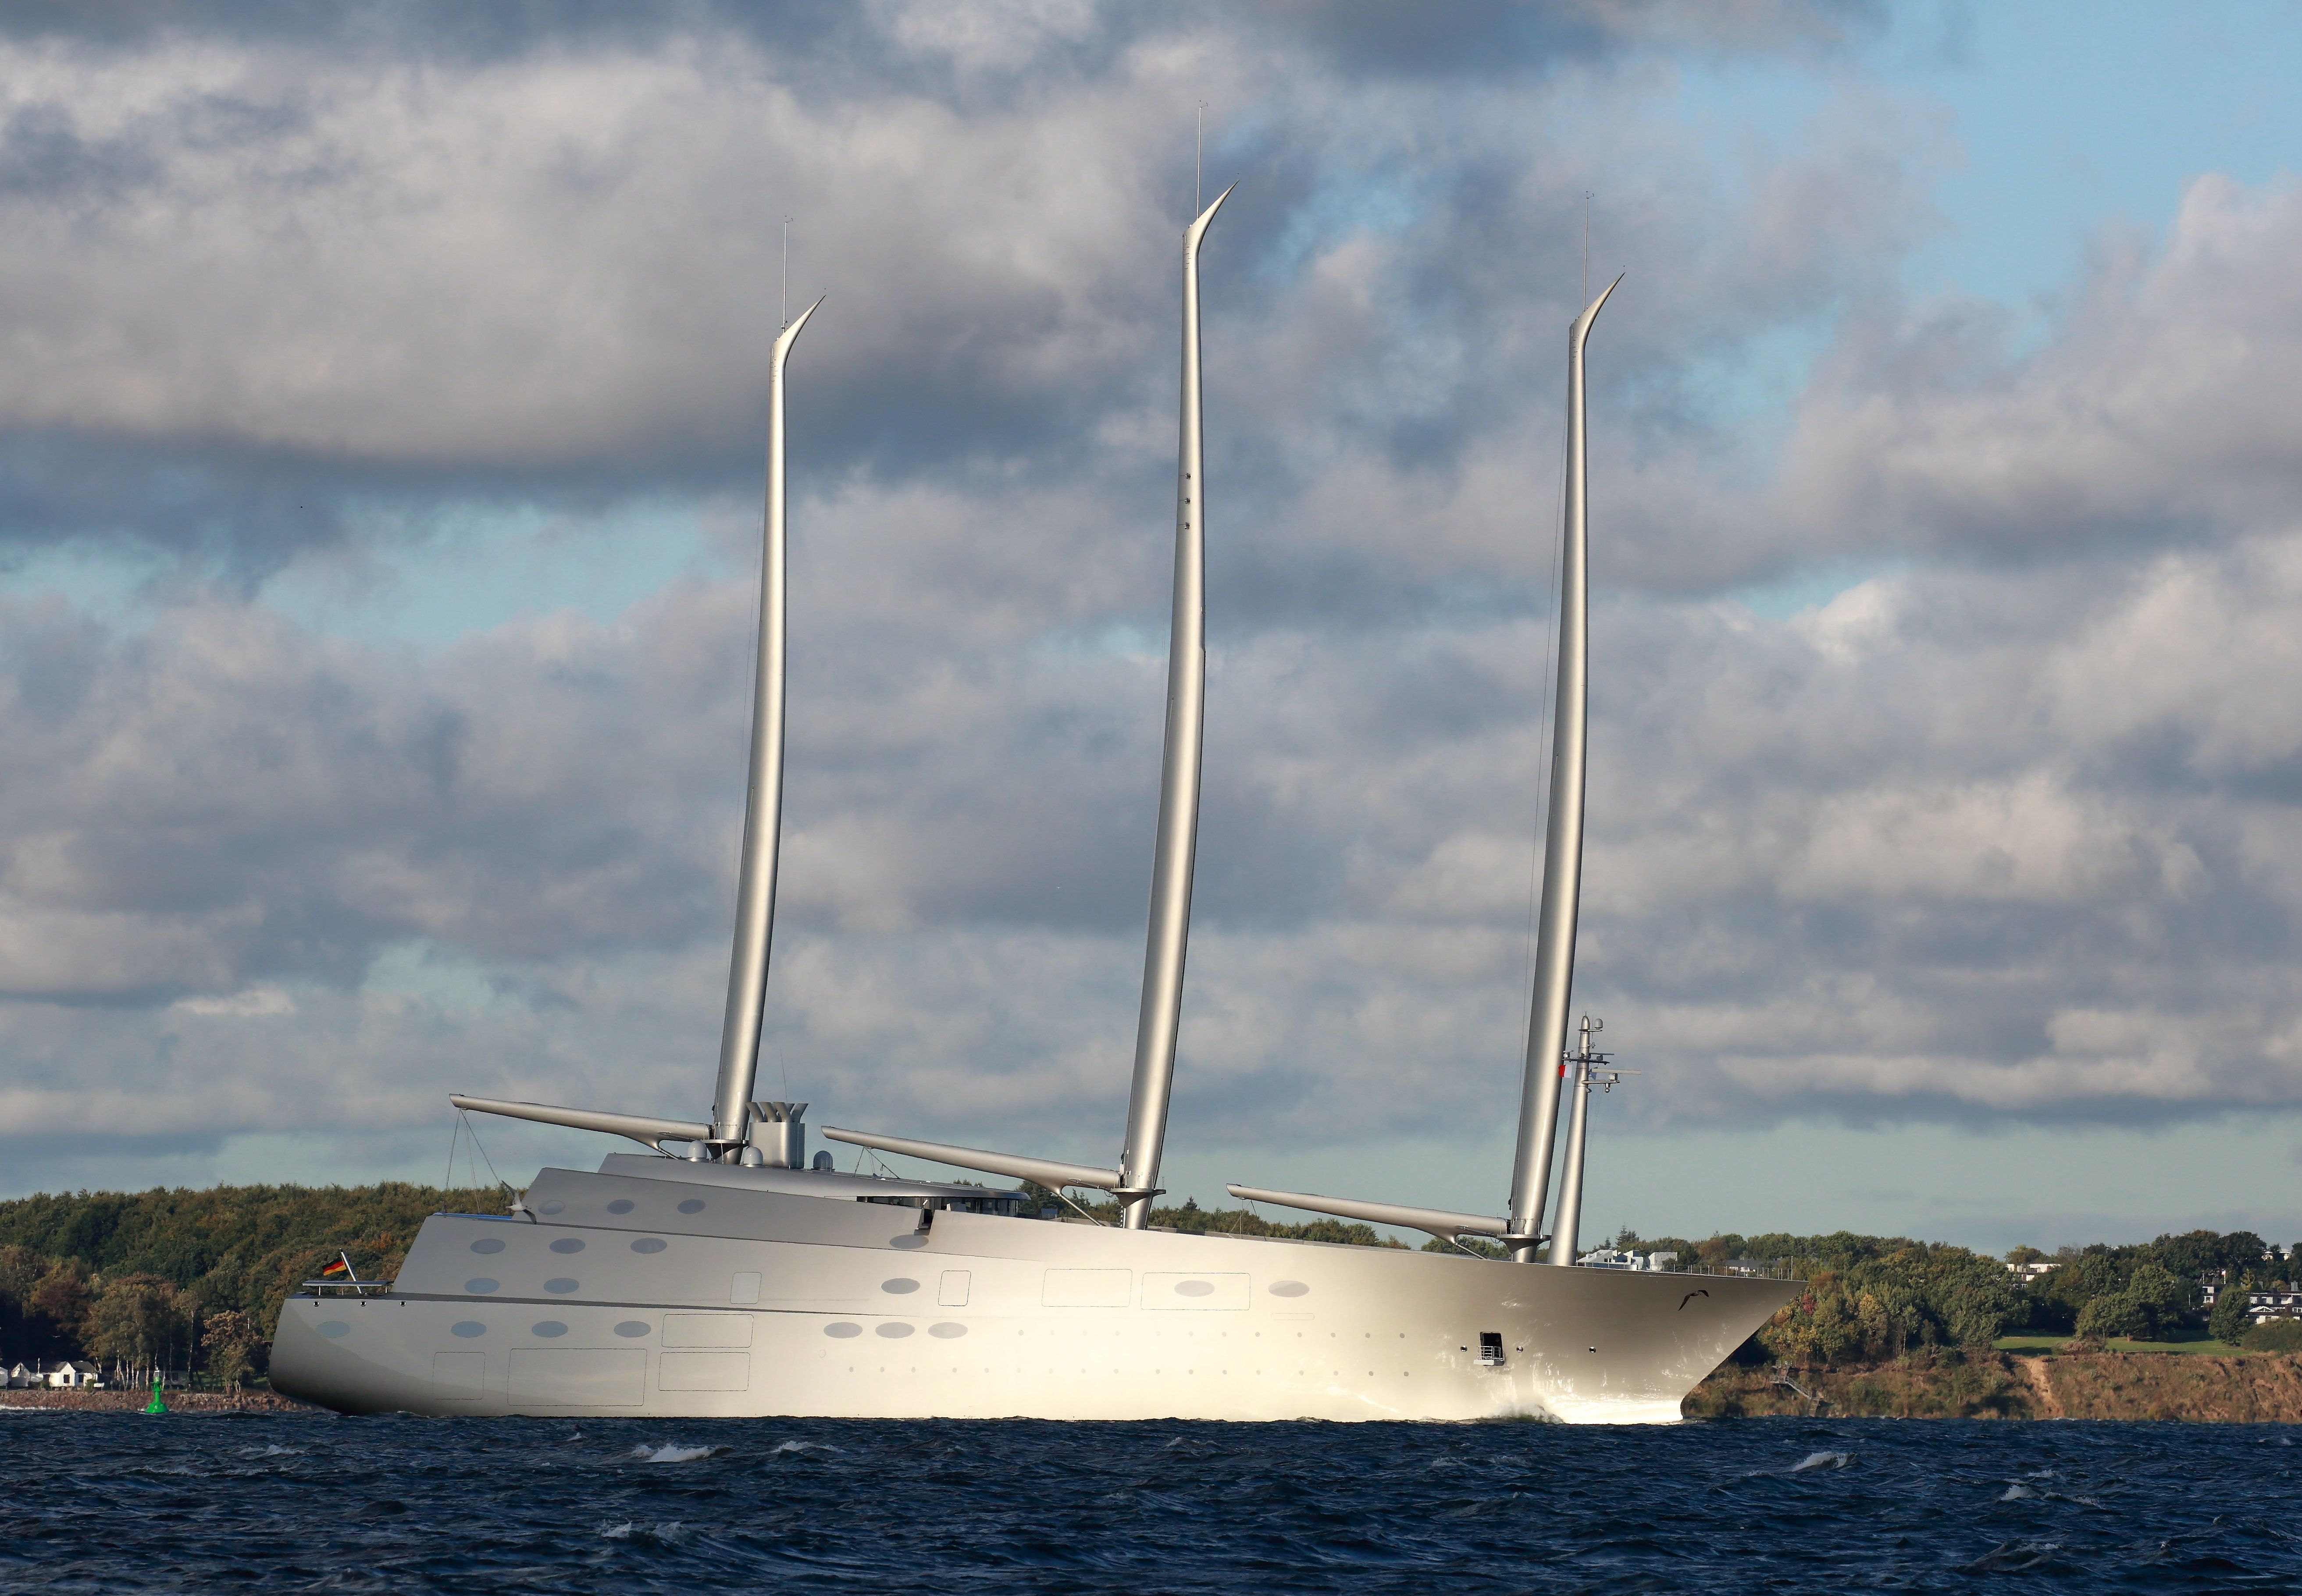 Sailing Yacht A: The World's Most Futuristic